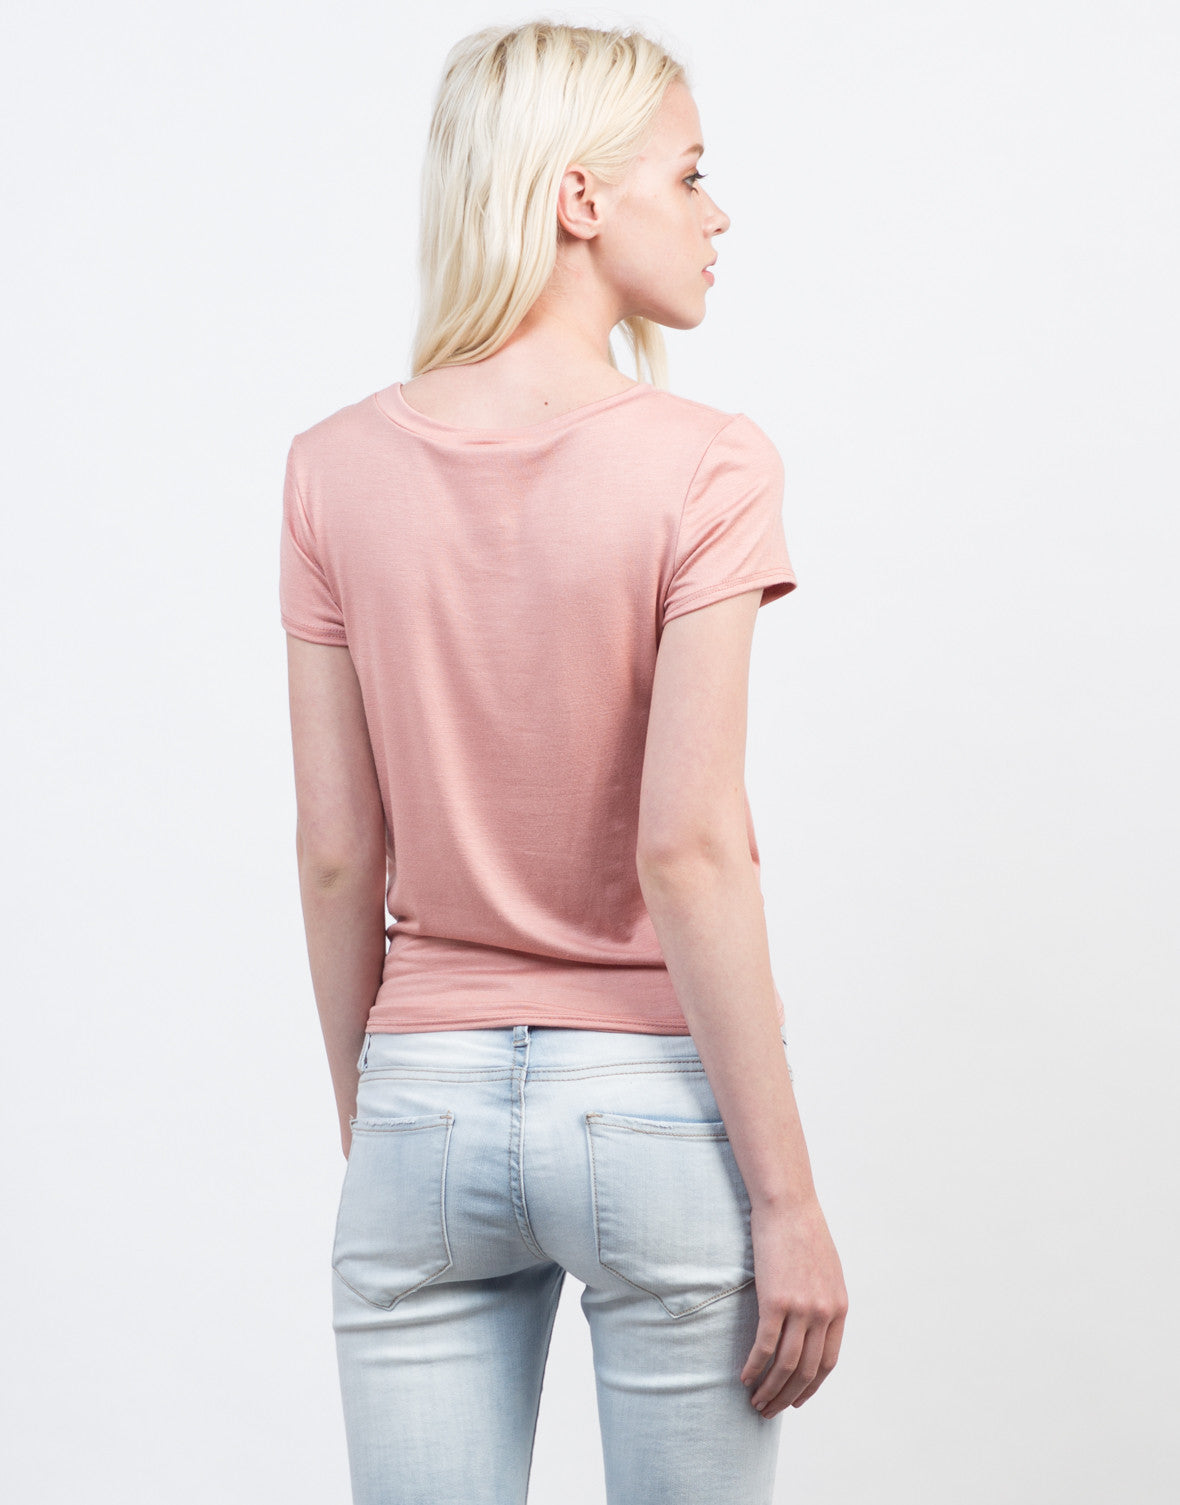 Back View of Front Knotted Tee